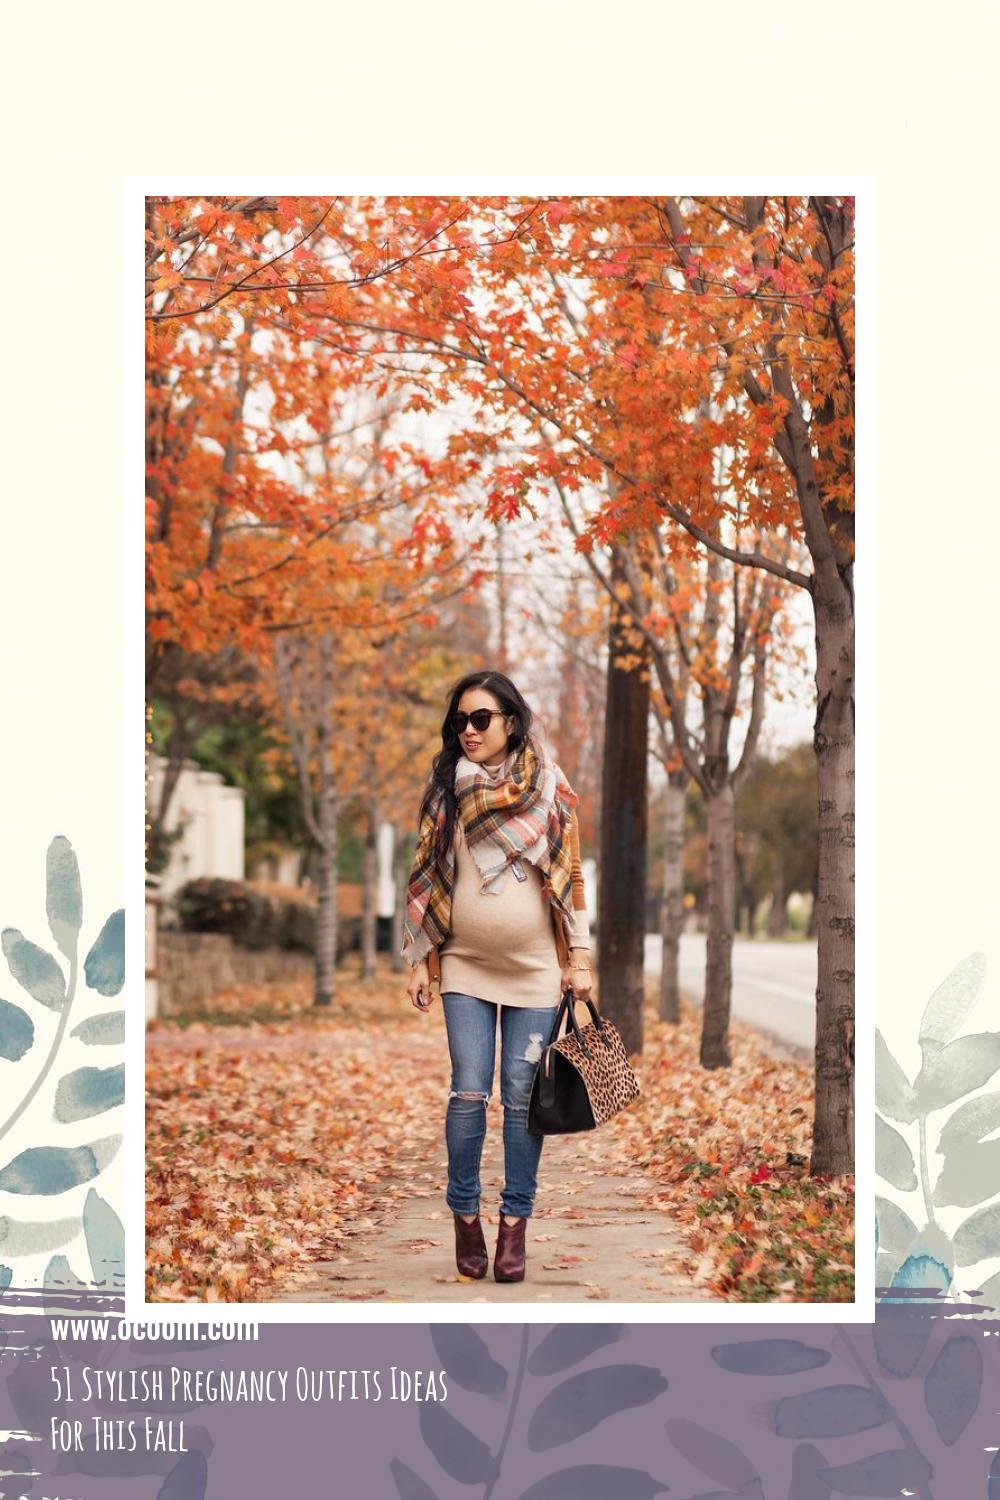 51 Stylish Pregnancy Outfits Ideas For This Fall 7